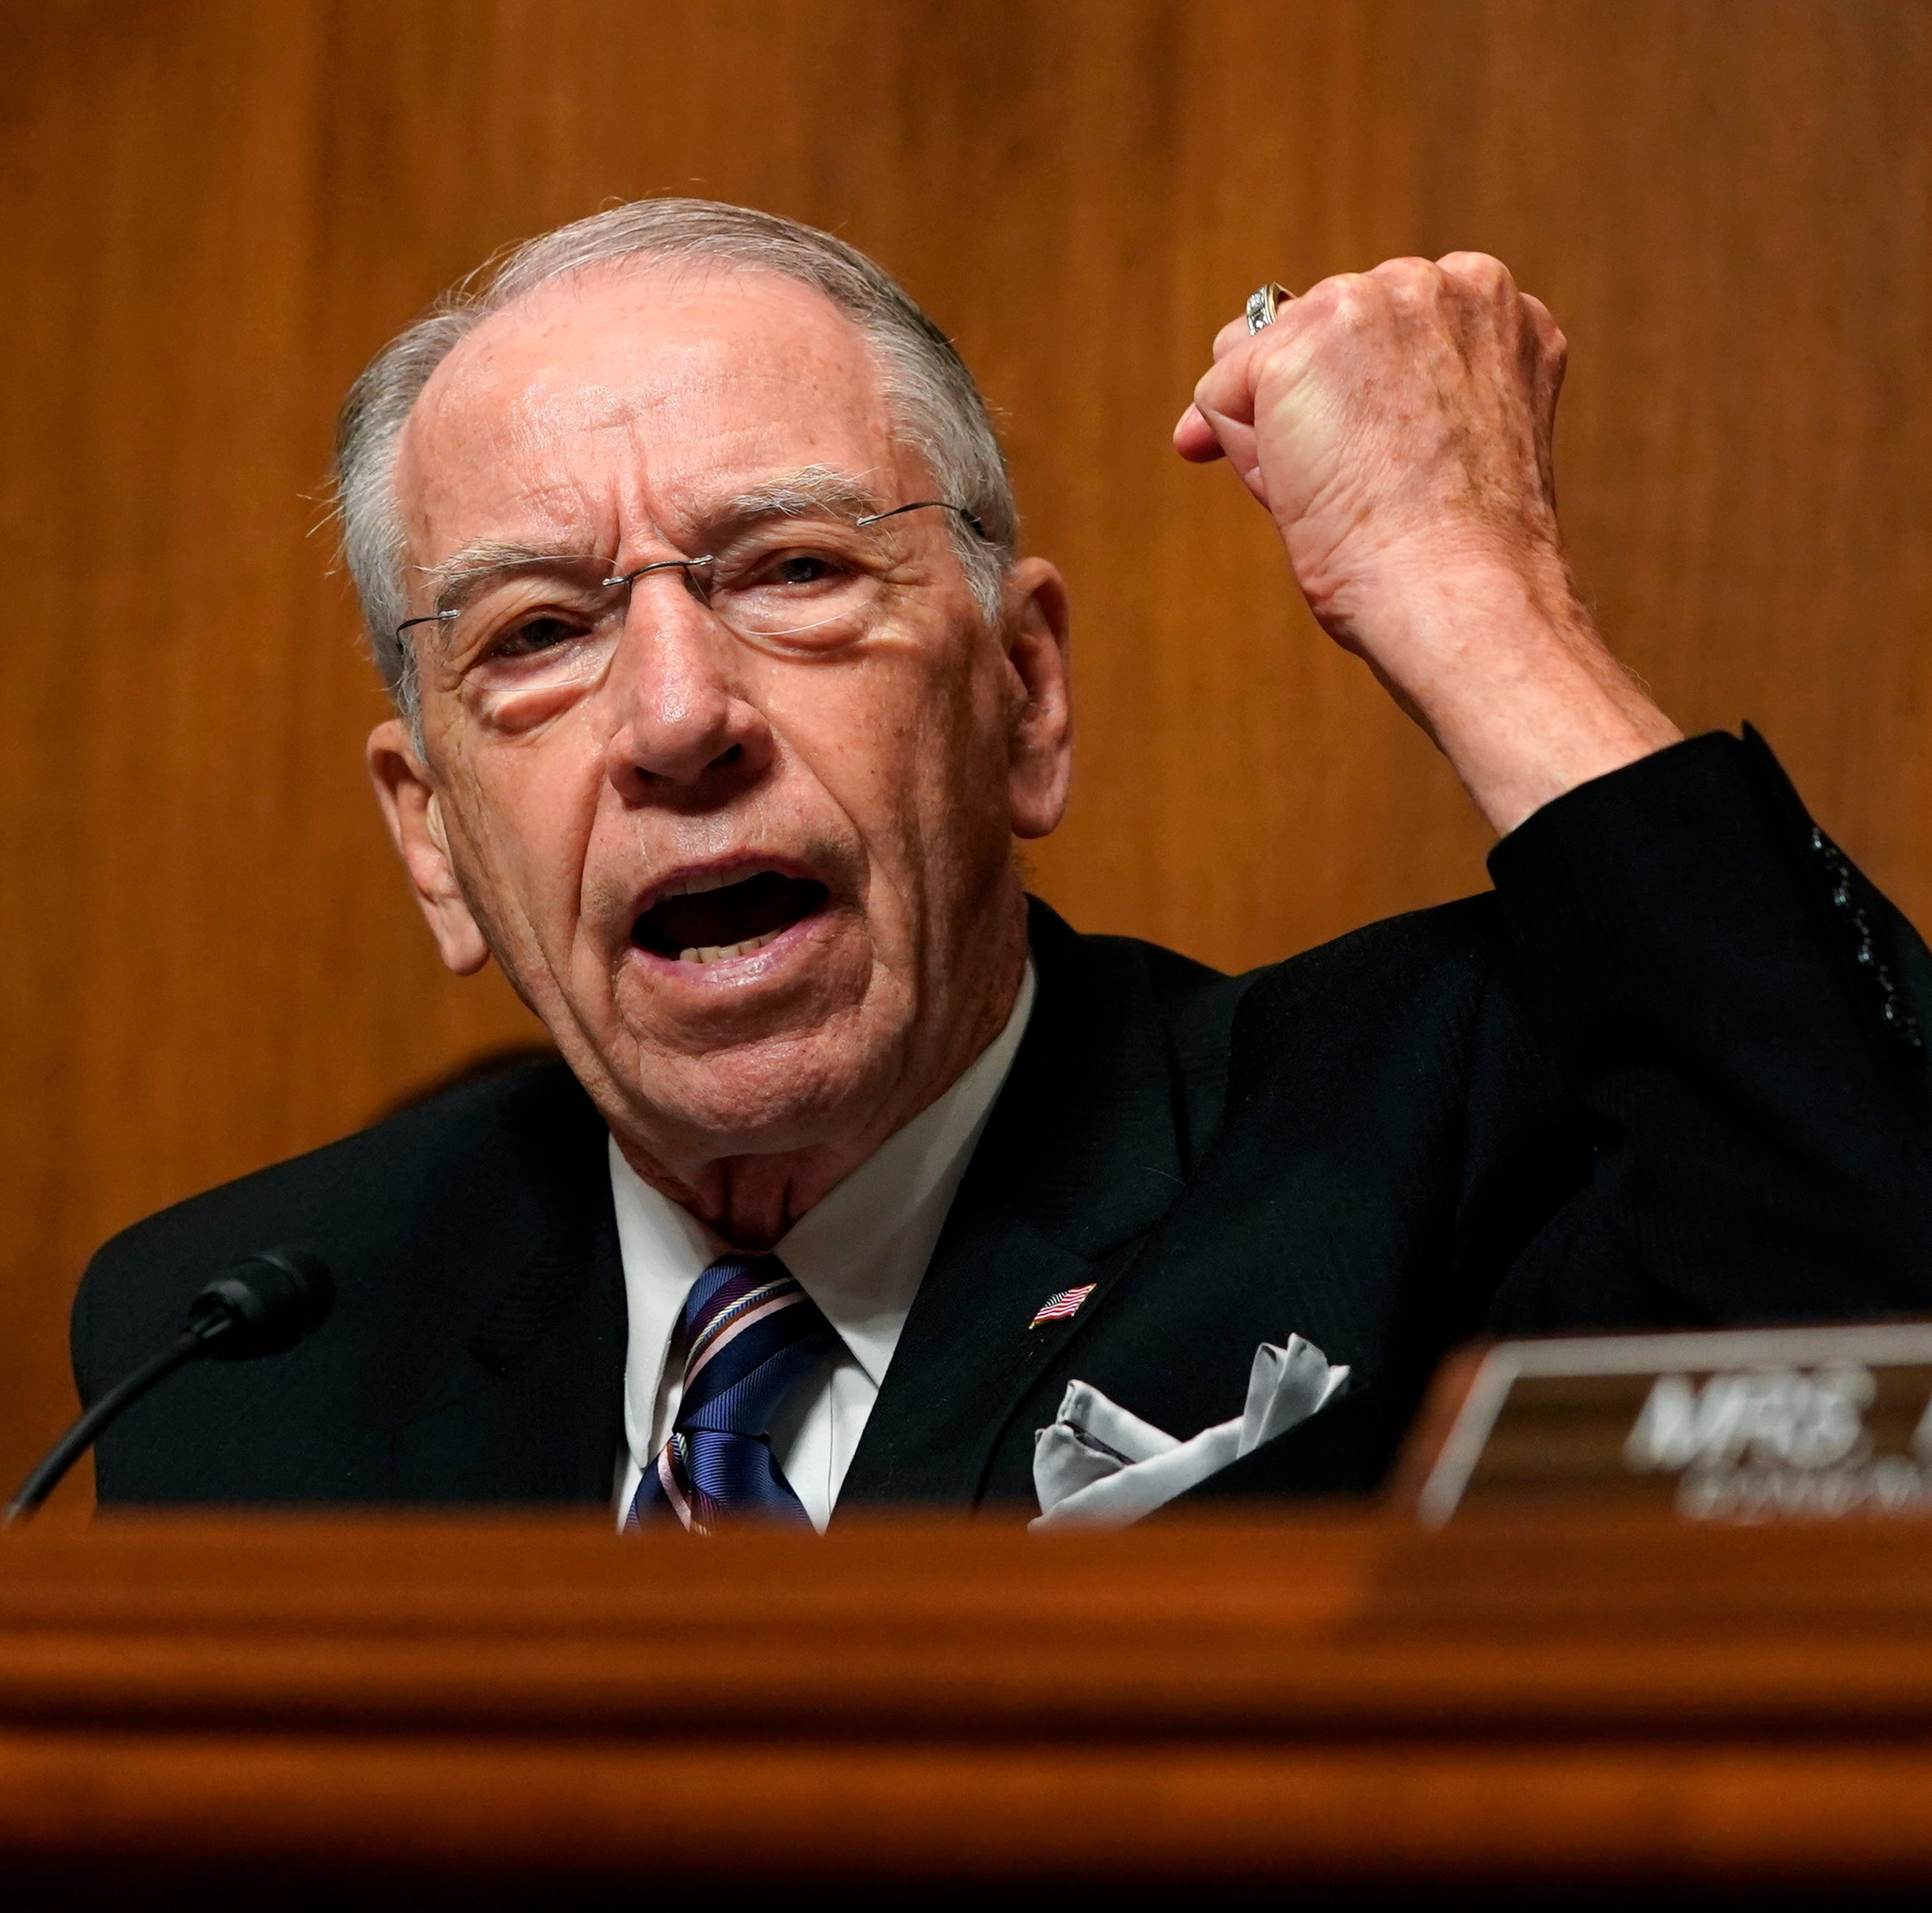 Donald Trump said wind turbines cause cancer. Chuck Grassley called that 'idiotic.'